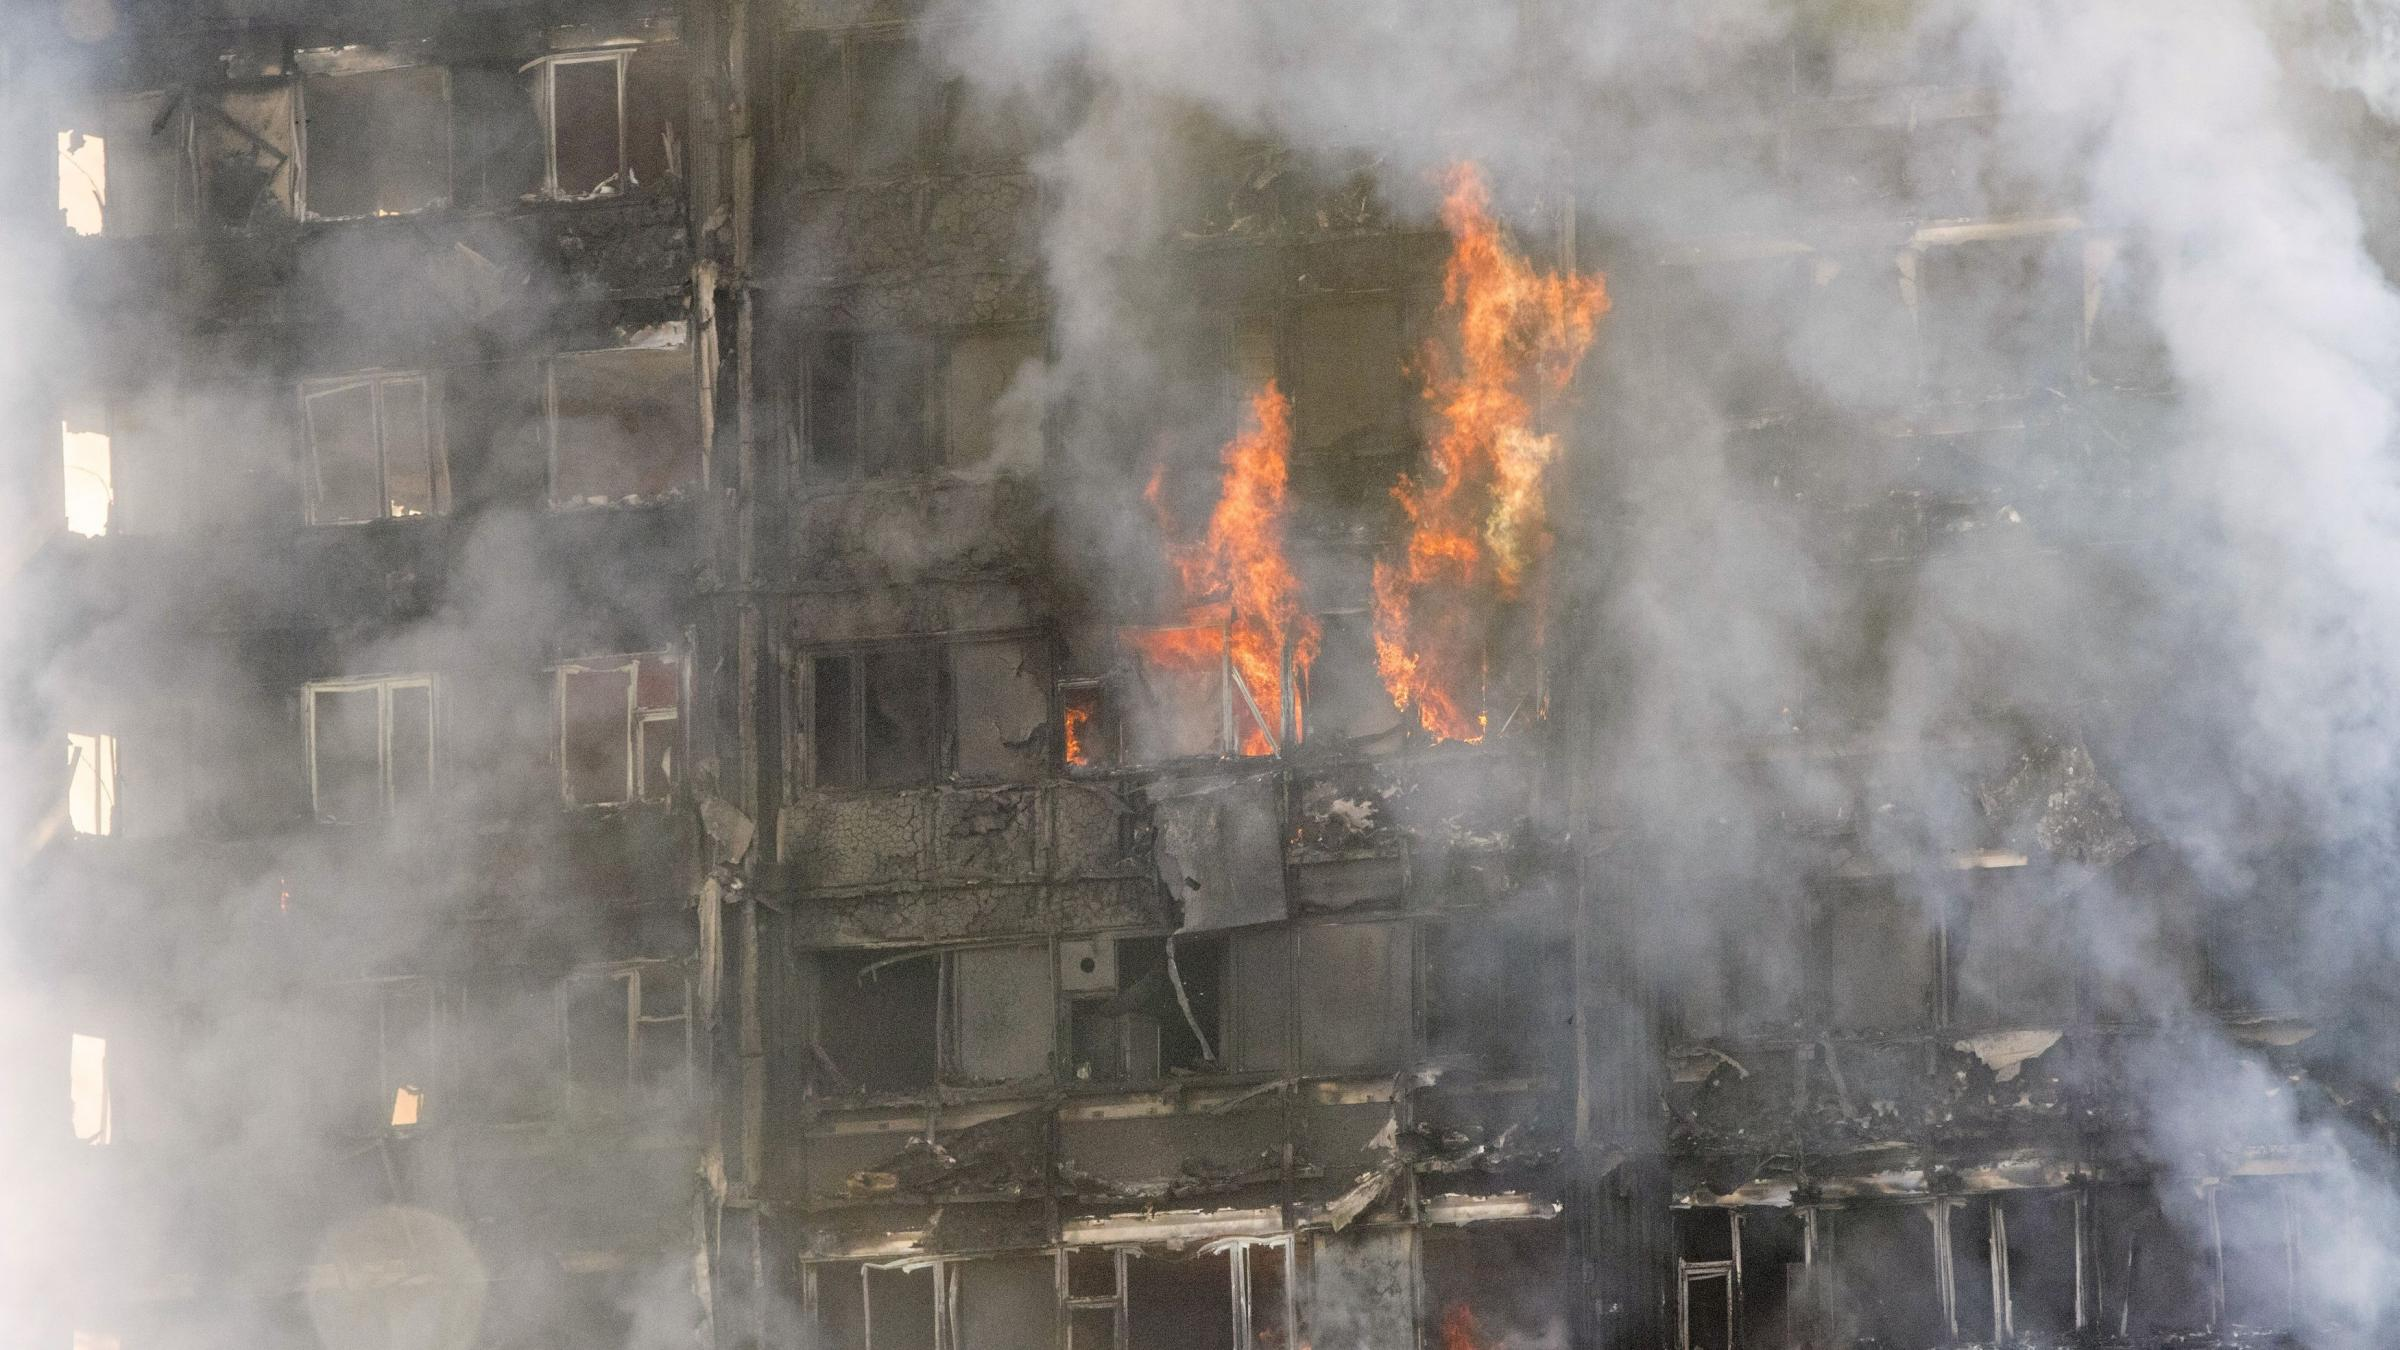 Fatalities in London High-Rise Fire